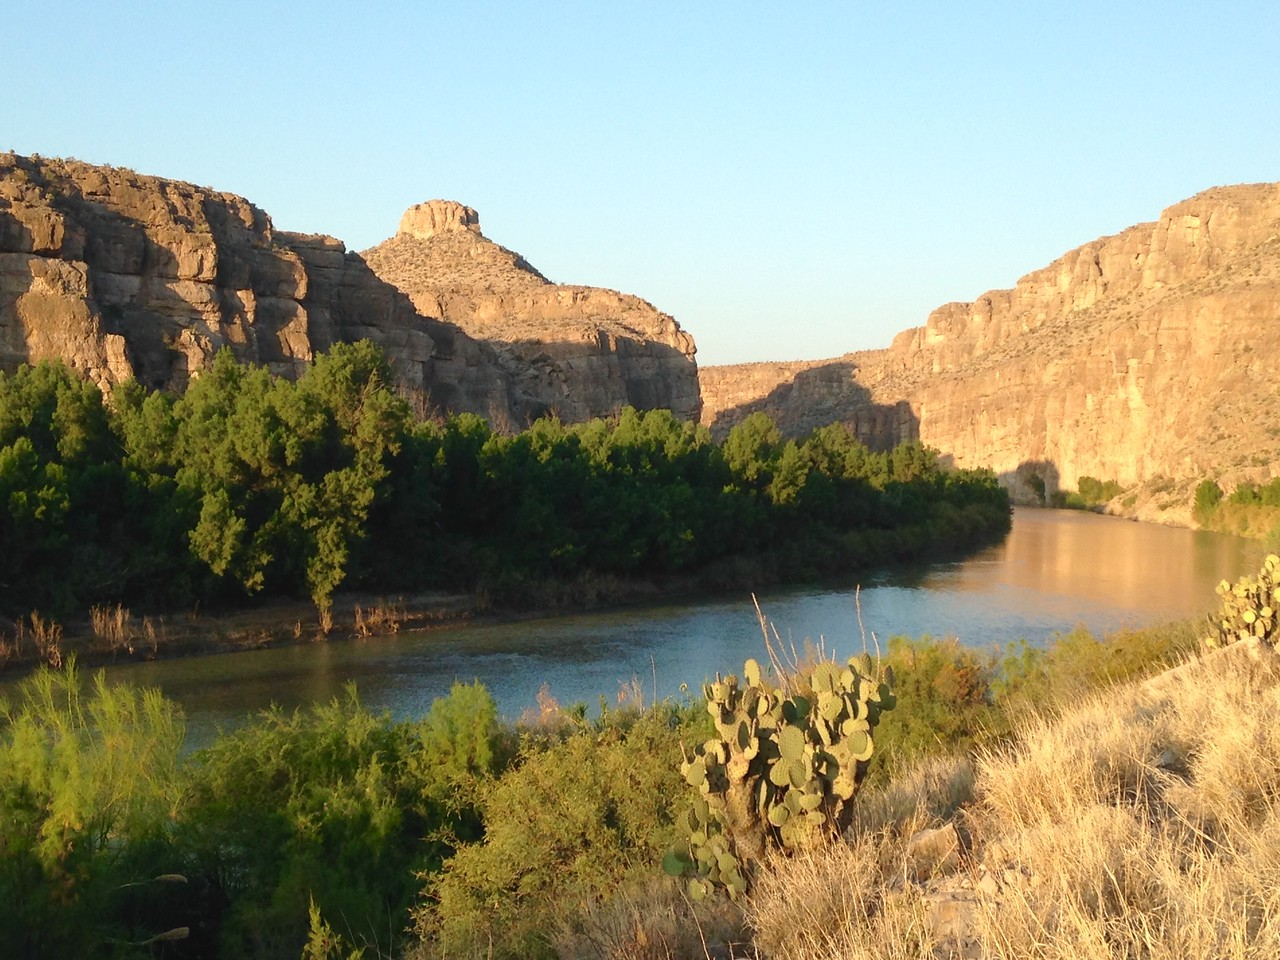 Two views of the Rio Grande, from near our RV campsite.